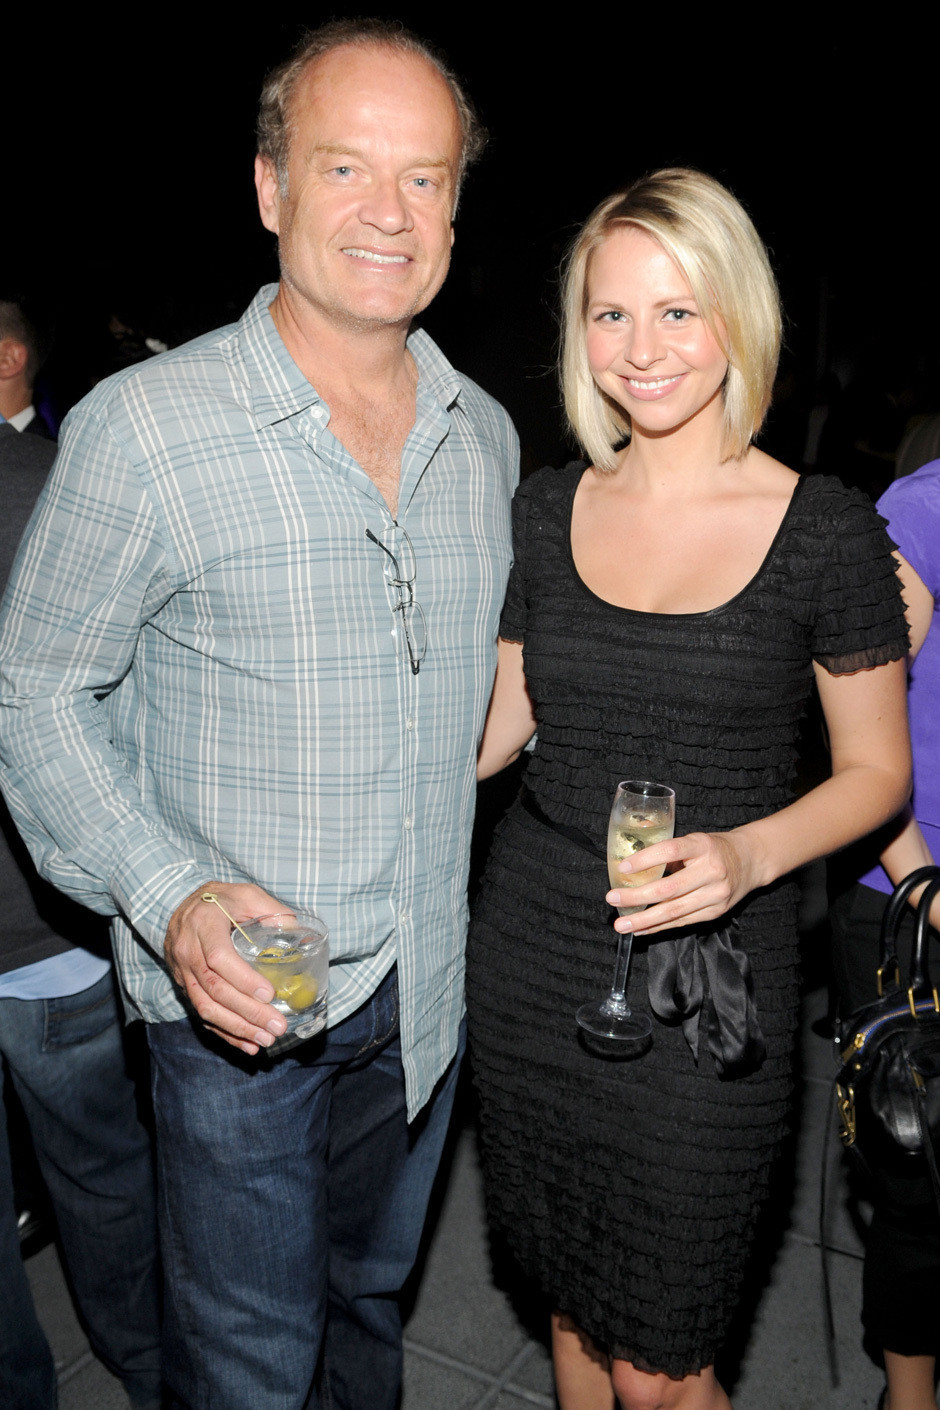 9 -  Kelsey Grammer with his girlfriend Kayte Walsh in 2010. Grammer started dating Walsh while still married to Camille Grammer whom he had been with the past 14 years.